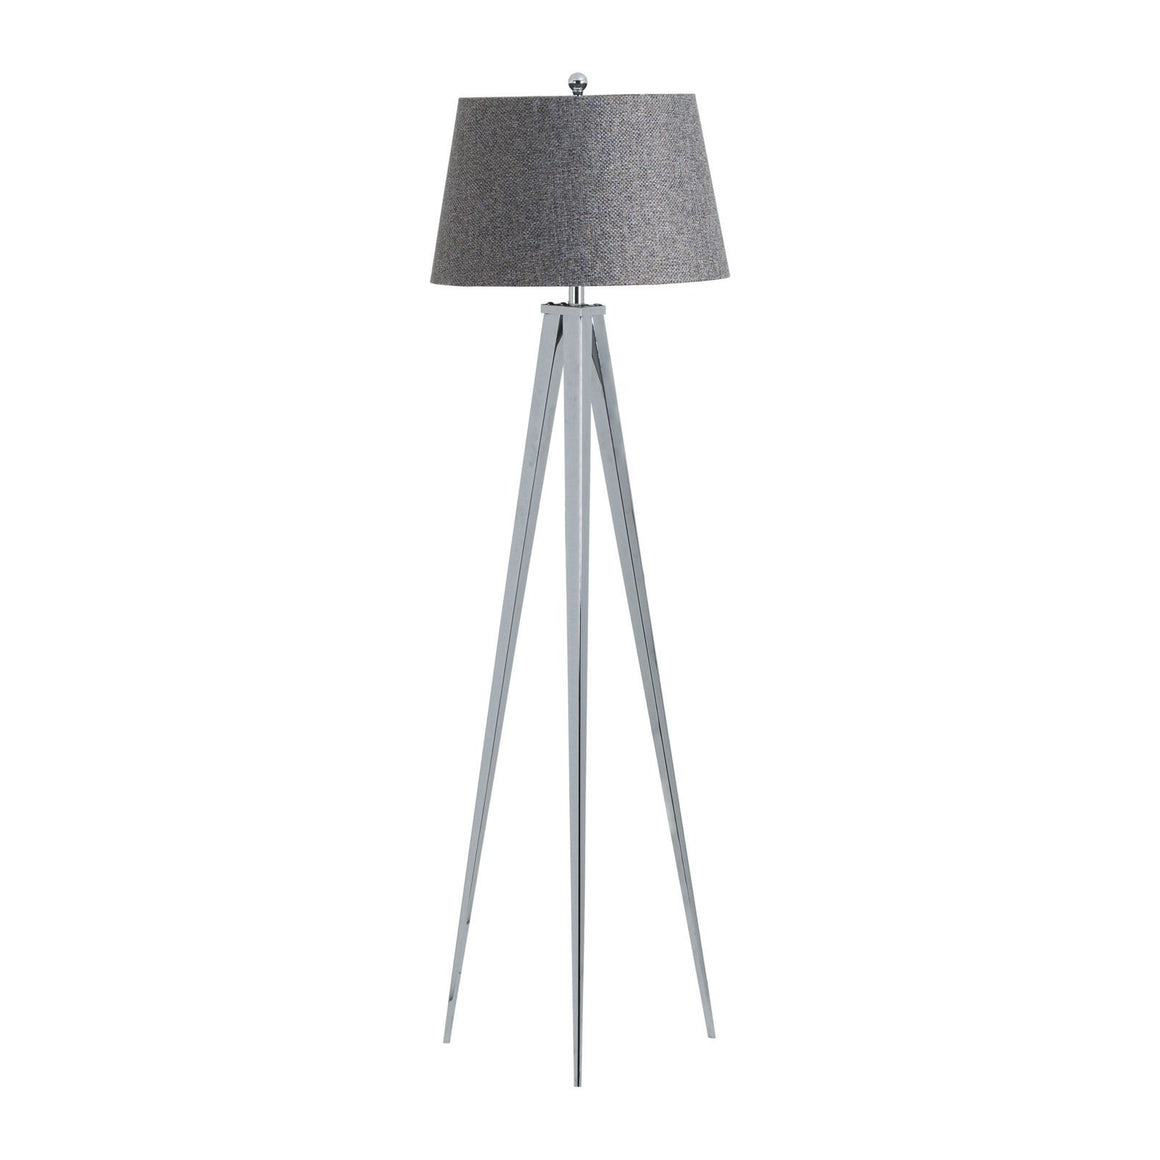 The Genoa Chrome Tripod Floor Lamp-Accents & Lighting-Furniture Walk UK